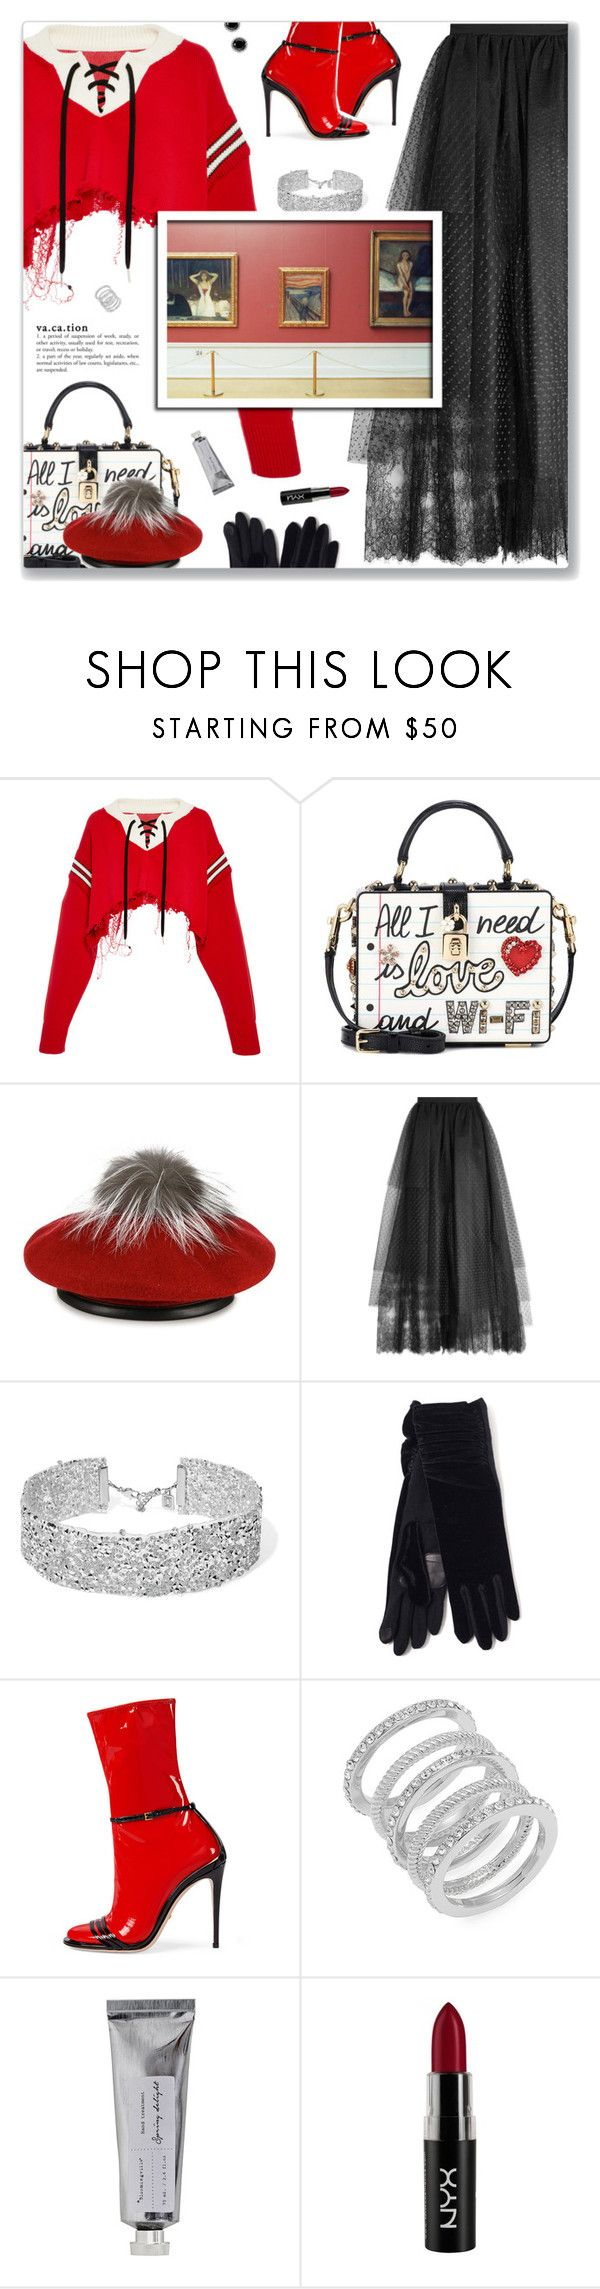 """""""Upgrade U (feat. Jay-Z), Beyoncé"""" by blendasantos ❤ liked on Polyvore featuring Monse, Dolce&Gabbana, Eugenia Kim, Elie Saab, DANNIJO, Echo, Gucci, Cole Haan, Bloomingville and NYX"""